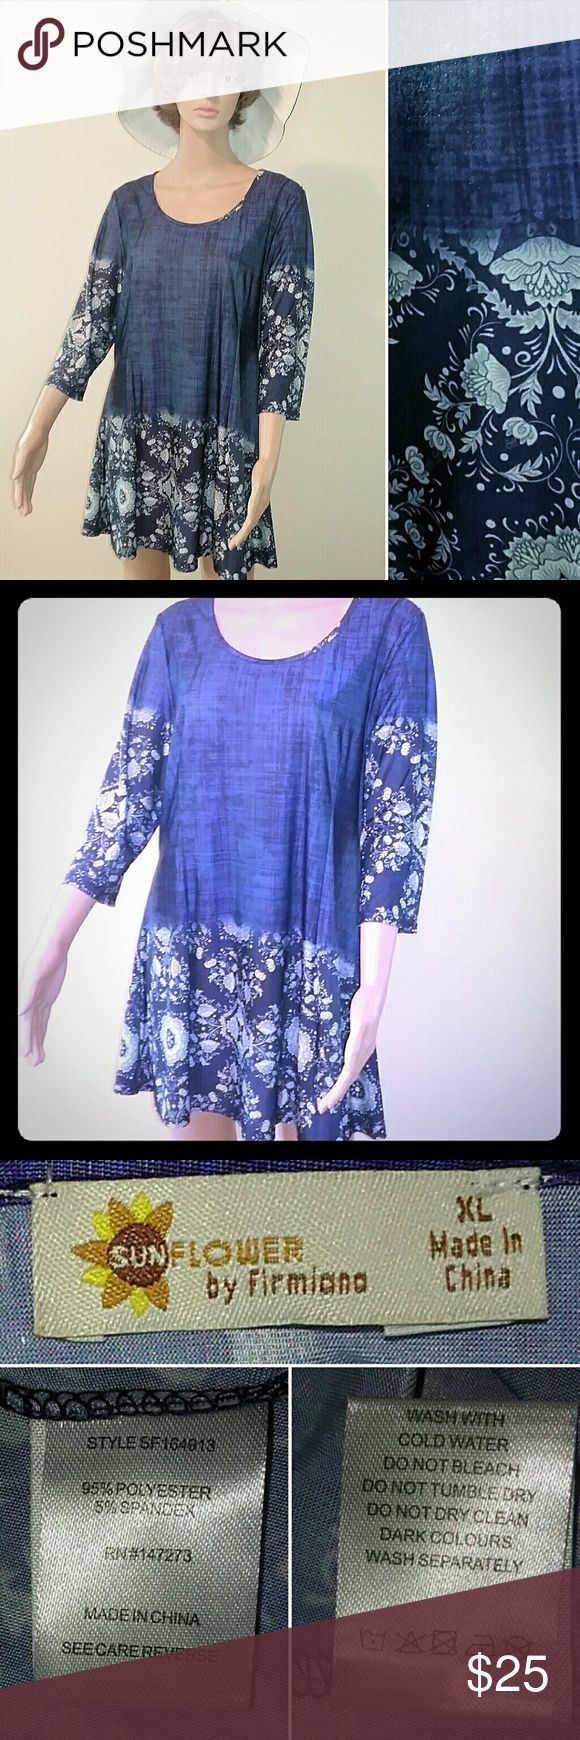 Boho Tunic in China Blue Comfort meets style in this fashionable long tunic top with scoop neck, 3/4 sleeves, and mixed floral and faux denim patterns. This item is pre-owned, gently used, and in excellent condition. Sunflower by Firmiana Tops Tunics